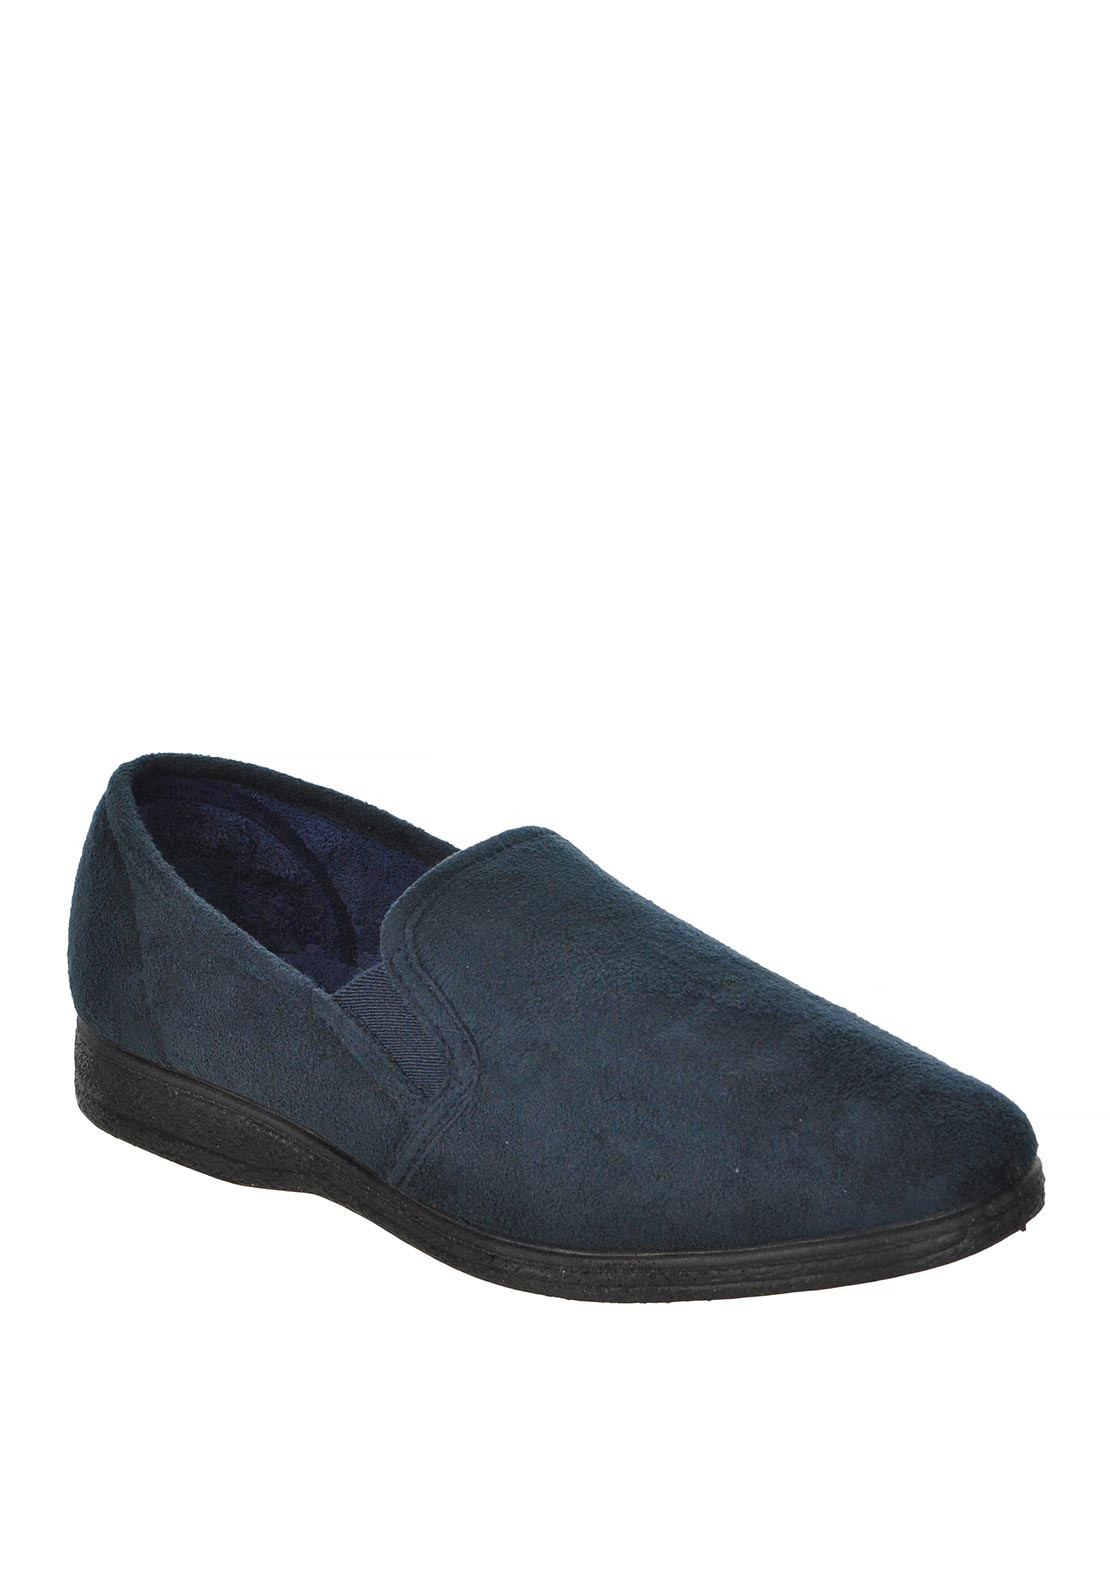 Silentnight Mens Oxford Bedroom Slipper, Navy